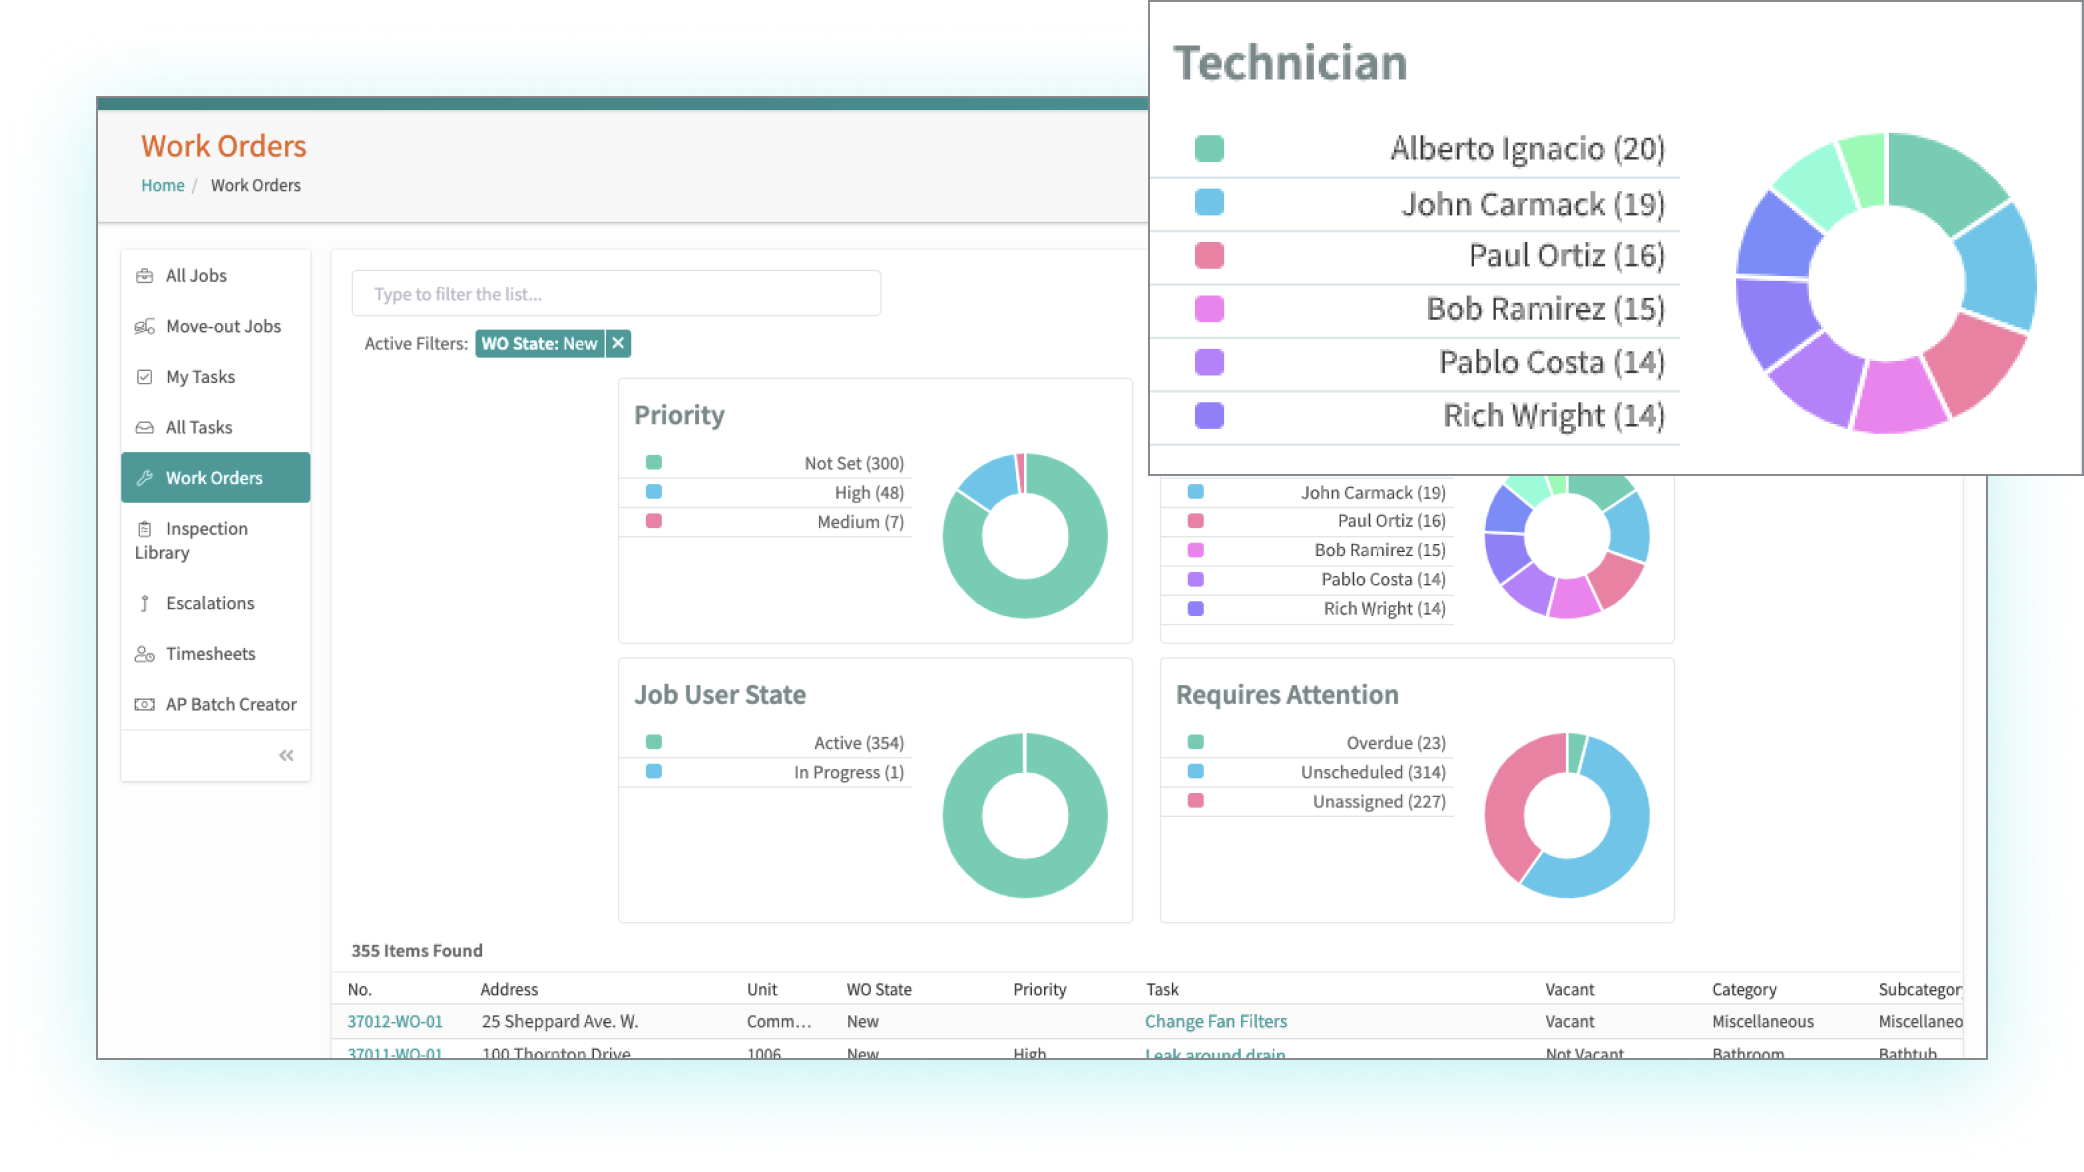 Desktop - work order dashboard highlighting technicians